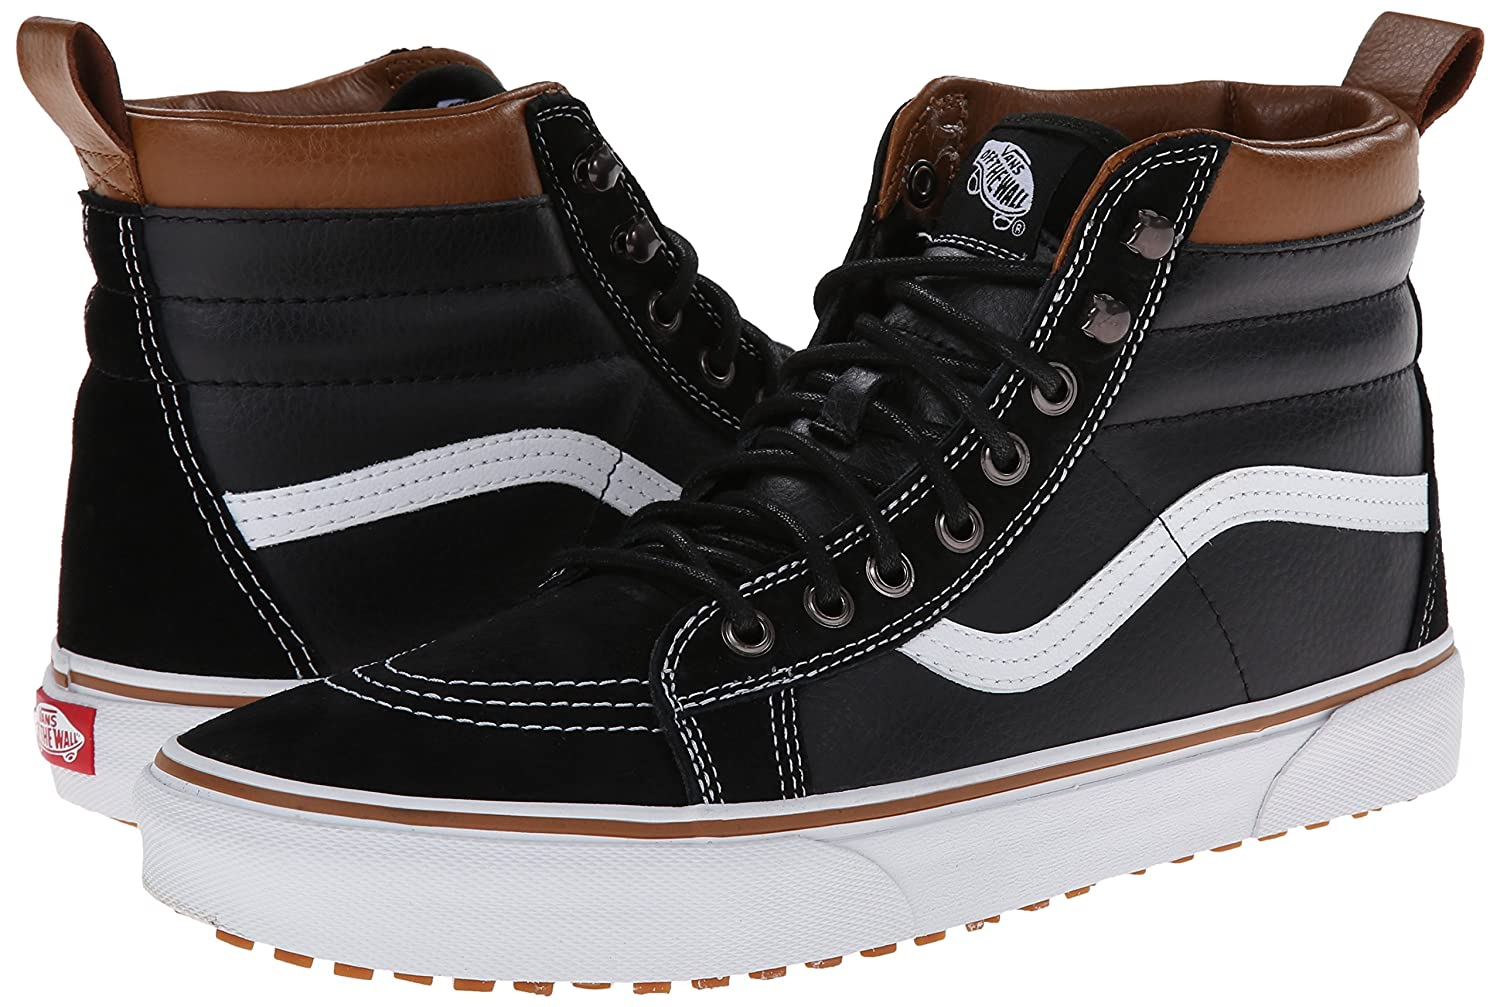 Vans Sk8-Hi Shoes, Unisex Casual High-Top Skate Shoes, Sk8-Hi Comfortable and Durable in Signature Waffle Rubber Sole B00HJBRBVO 8.5 M US Women / 7 M US Men|(Mte) Black/True White 069b9b